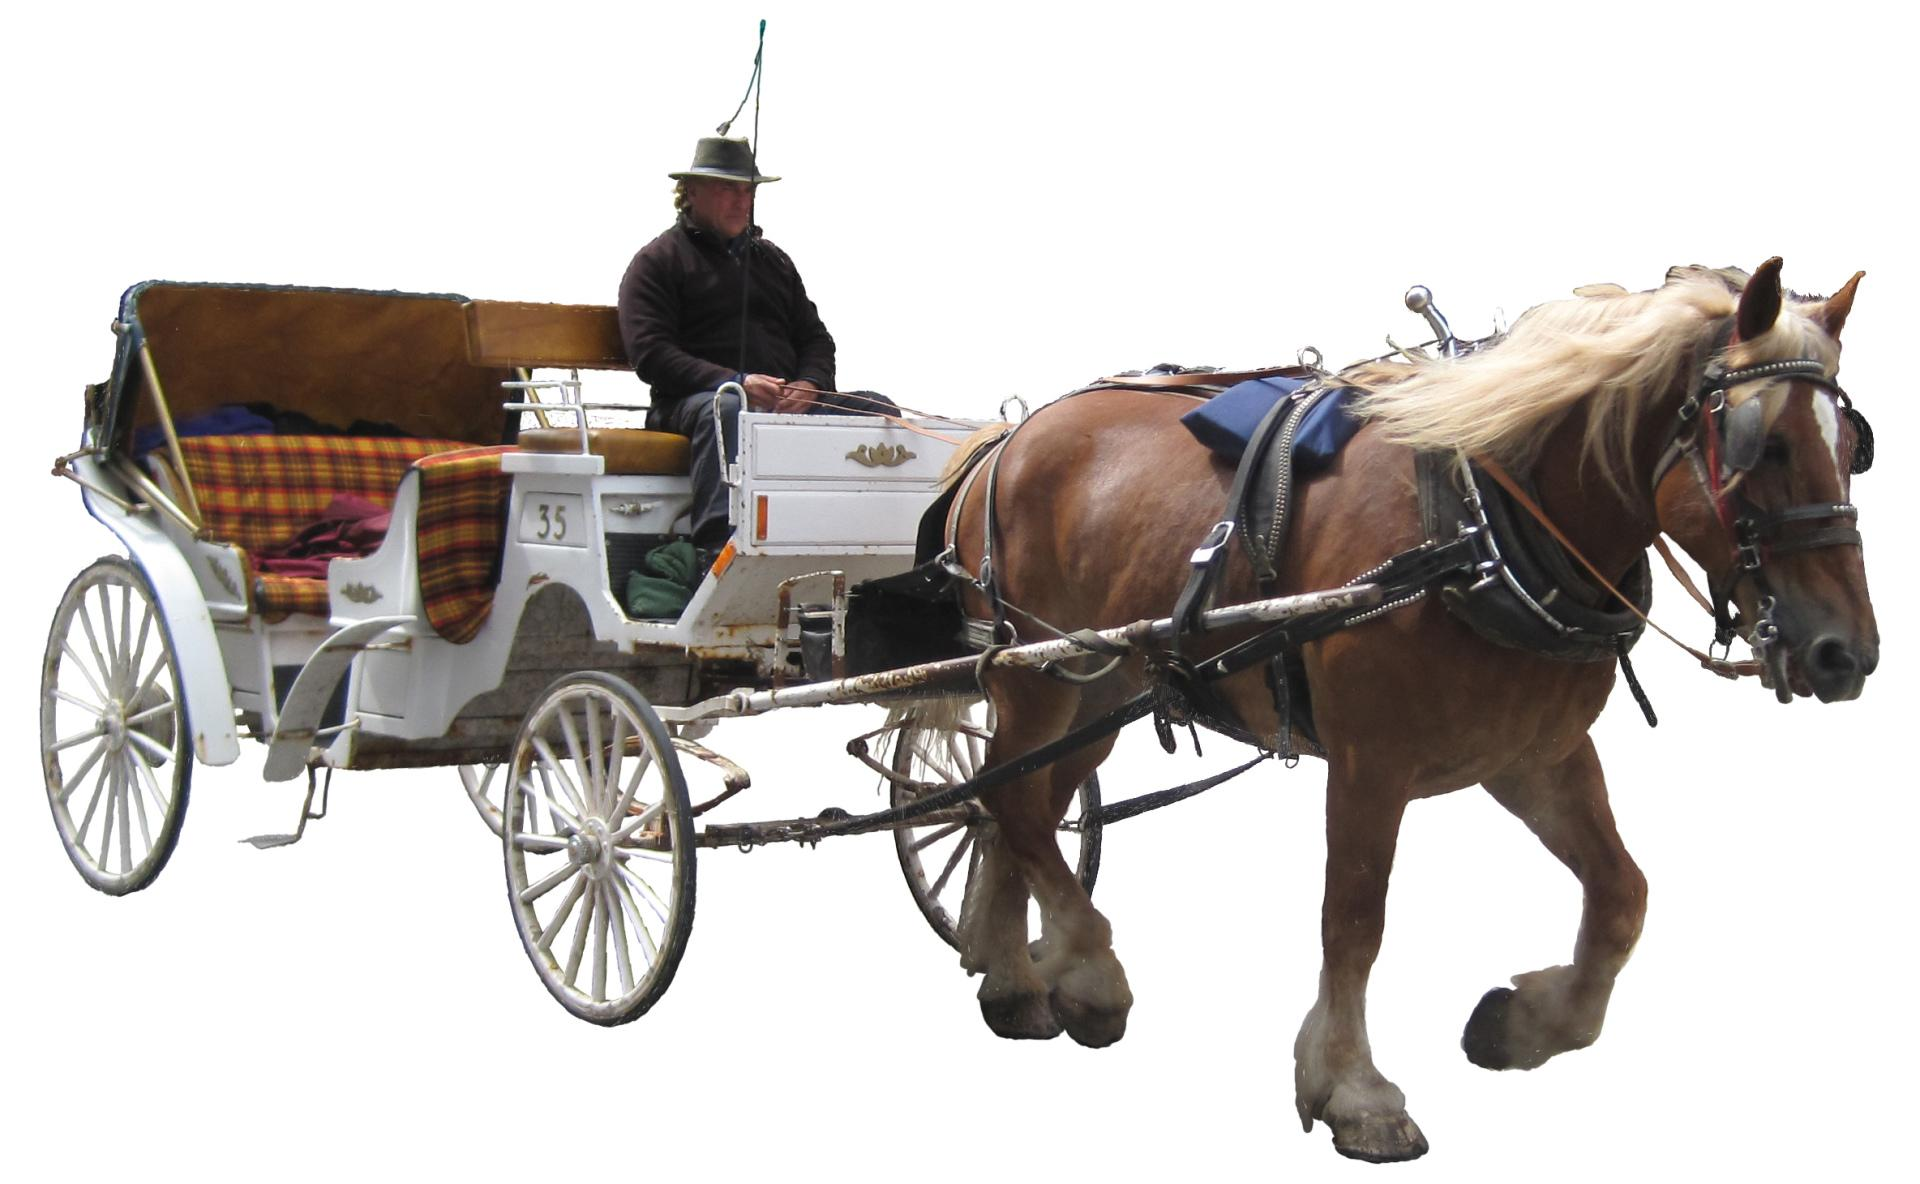 Horse Drawn Vehicle wallpapers HD quality